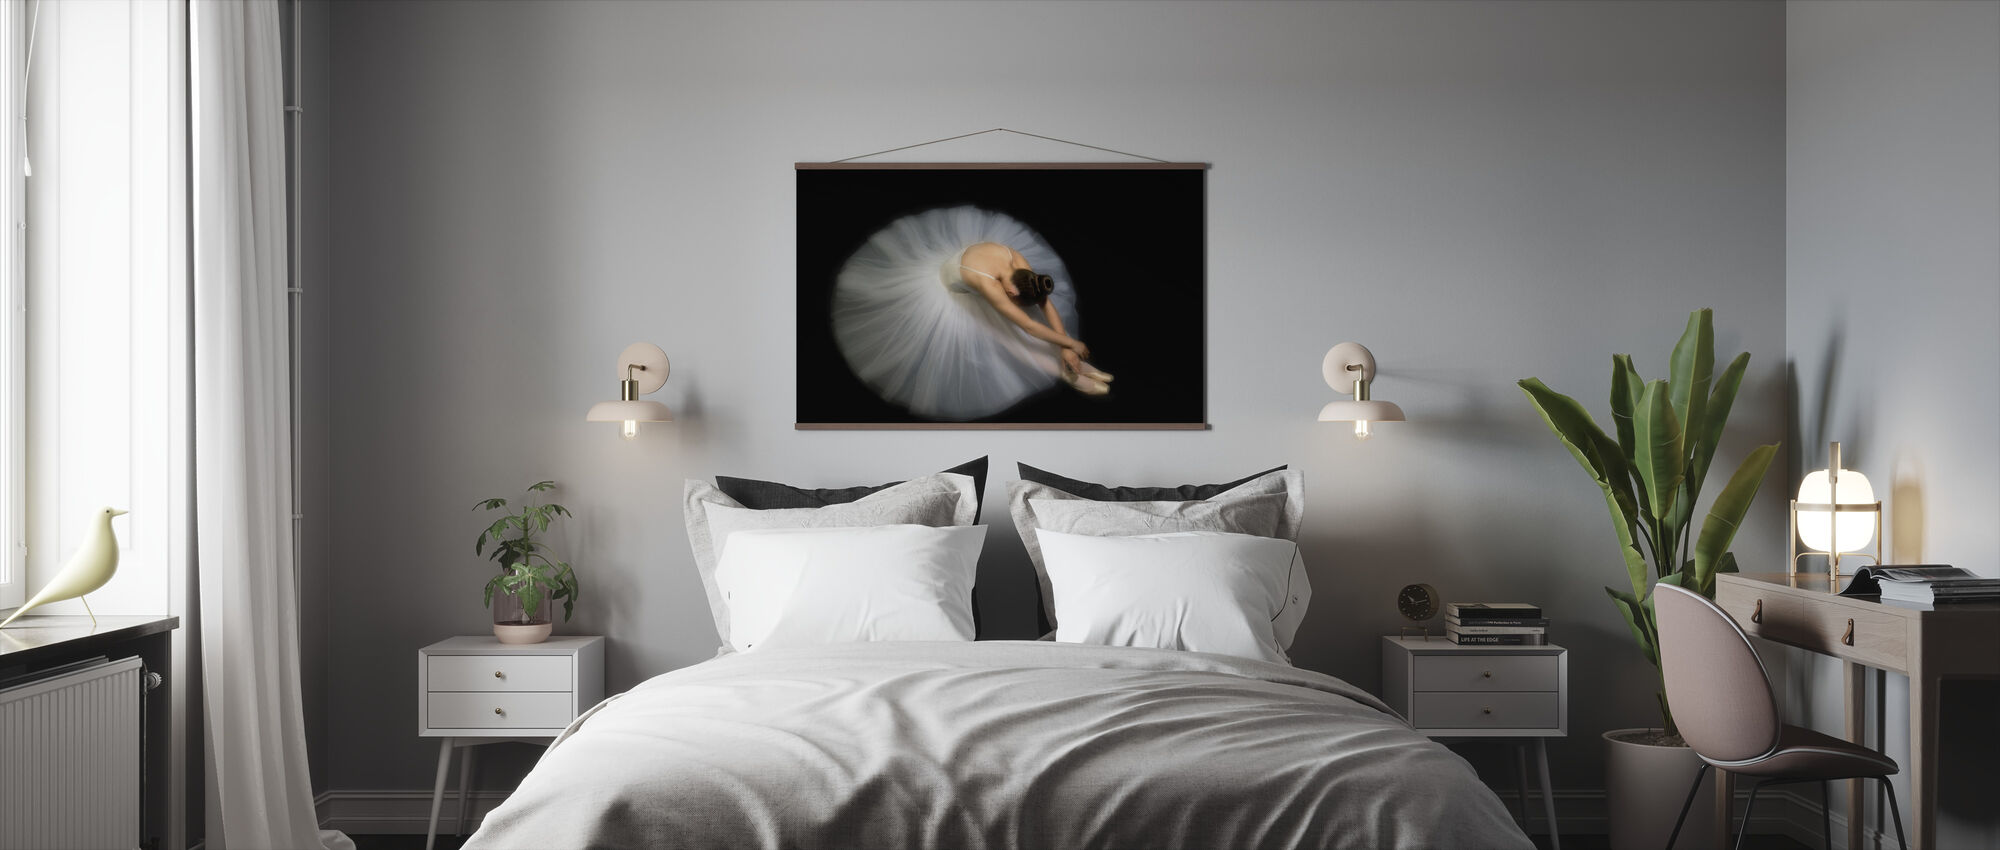 Elegance - Poster - Bedroom